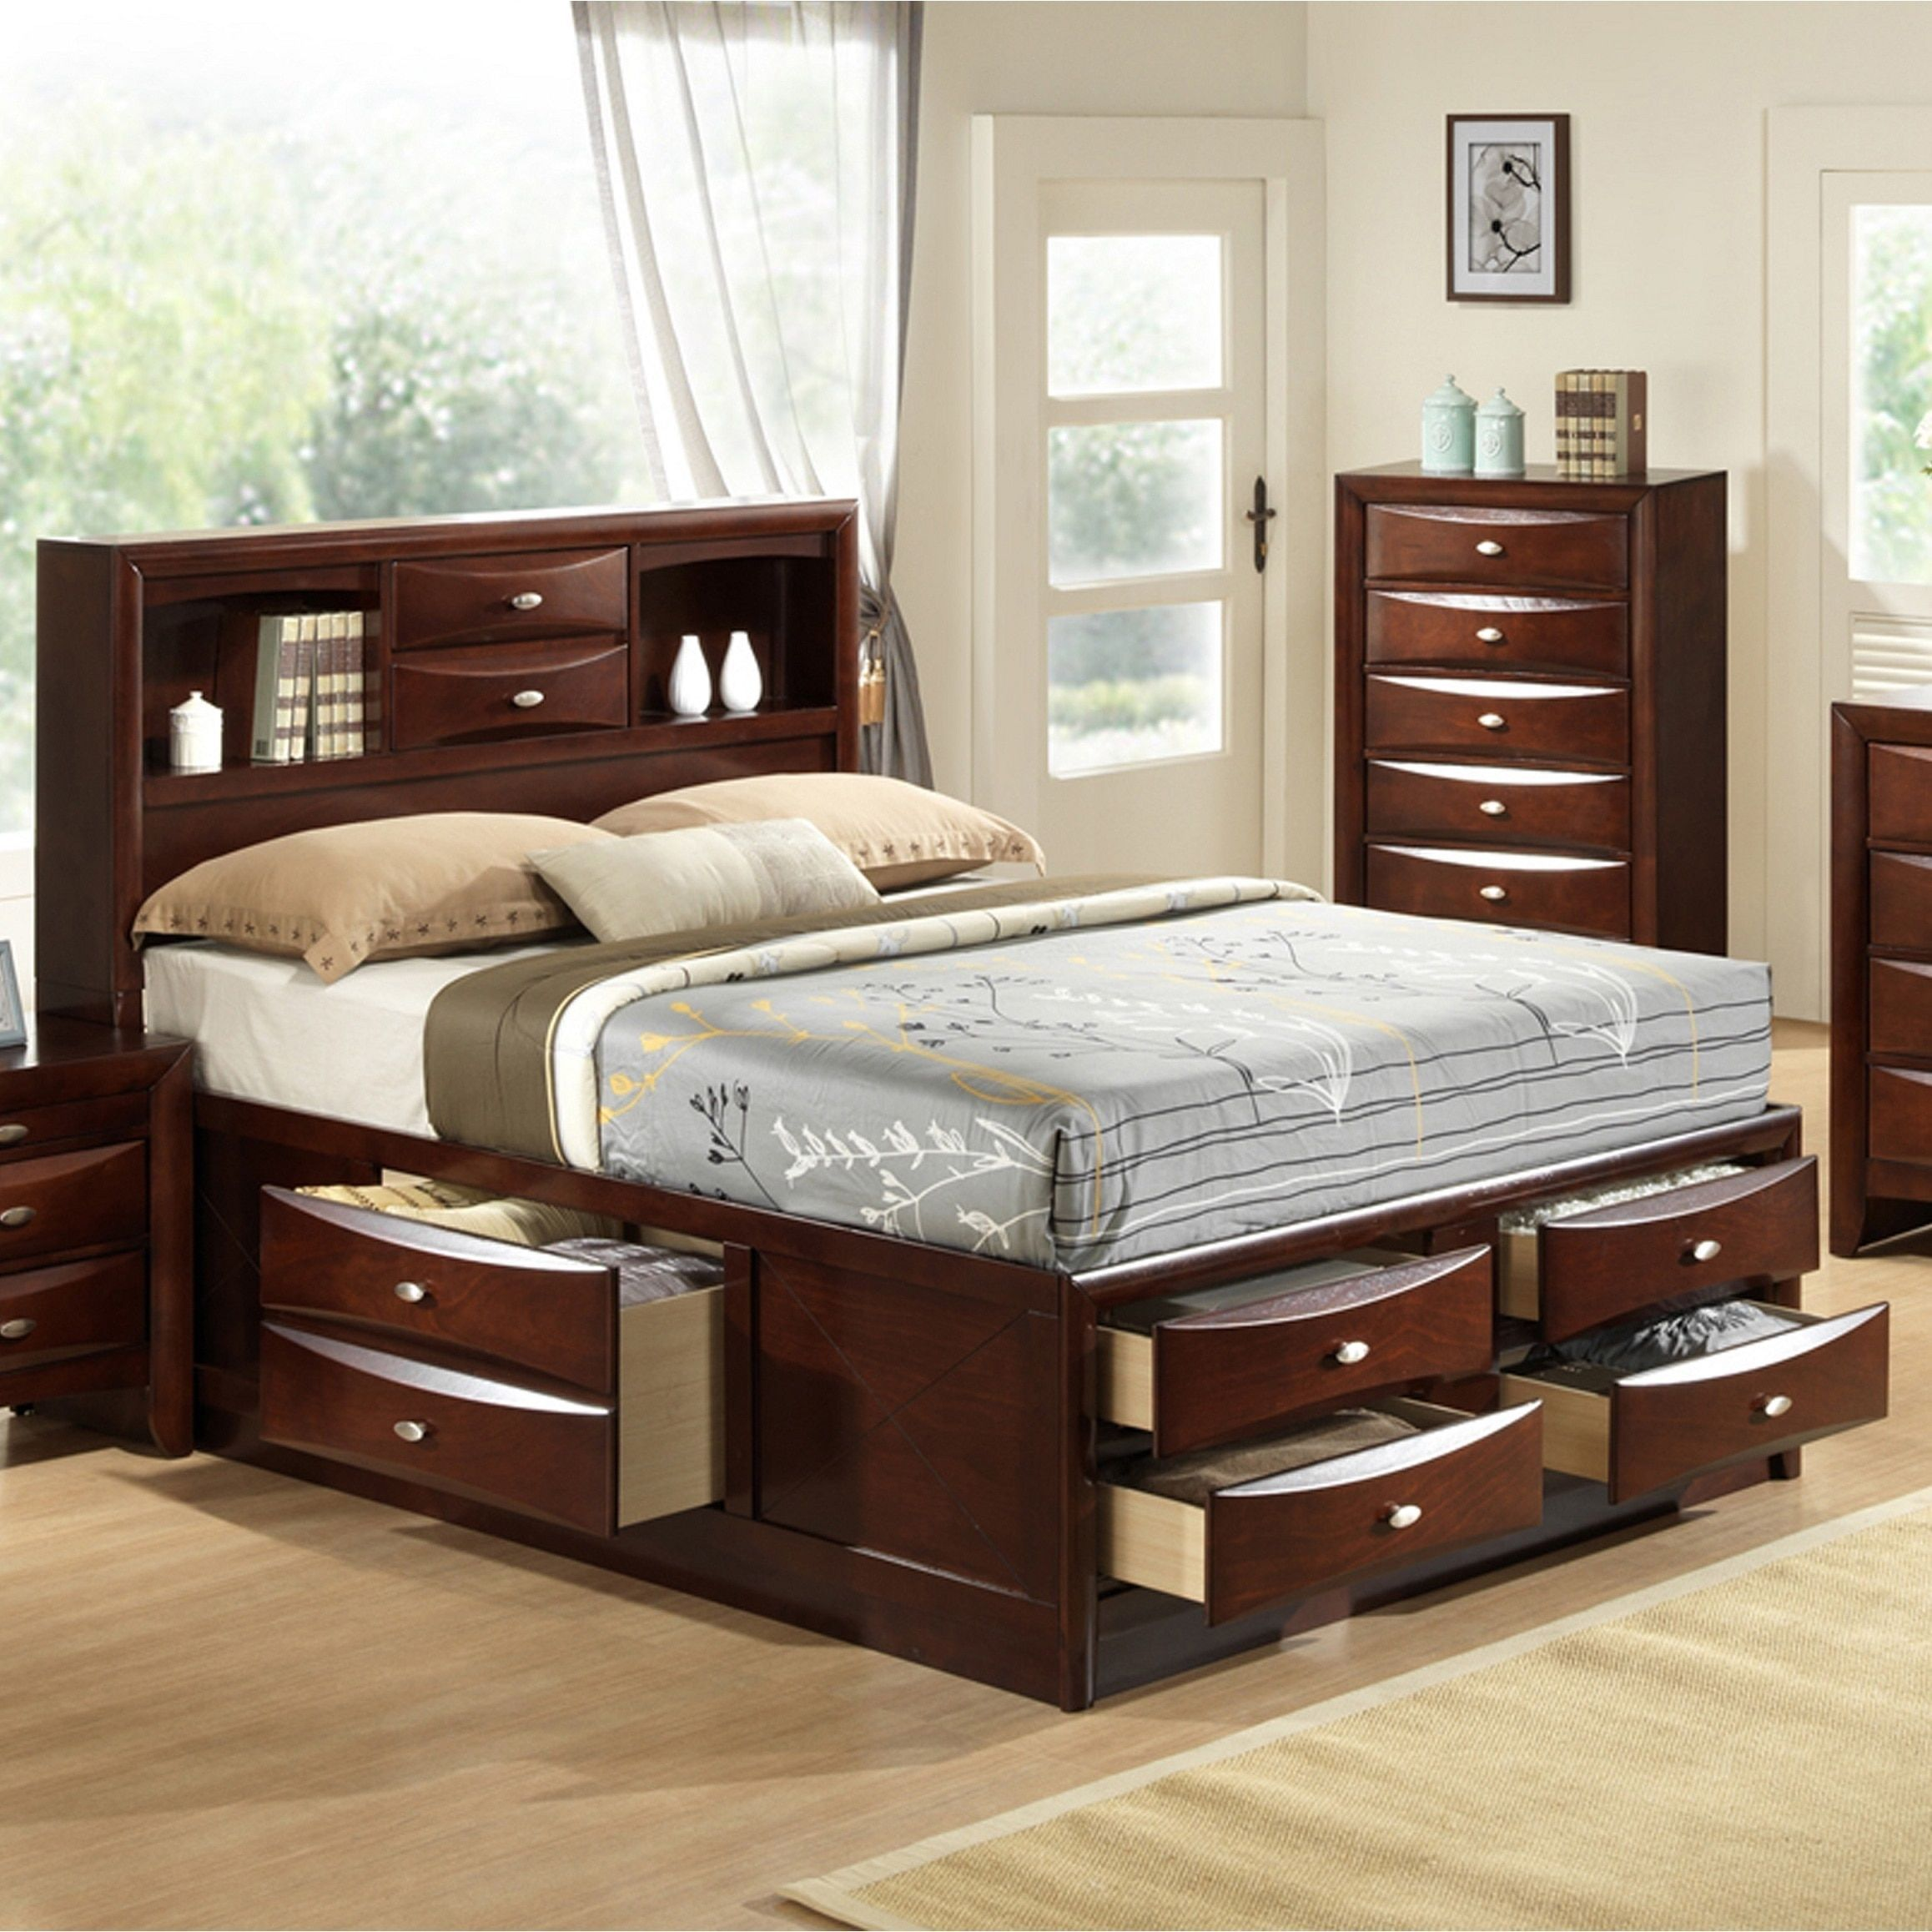 Emily 111 wood storage bed group with king bed dresser